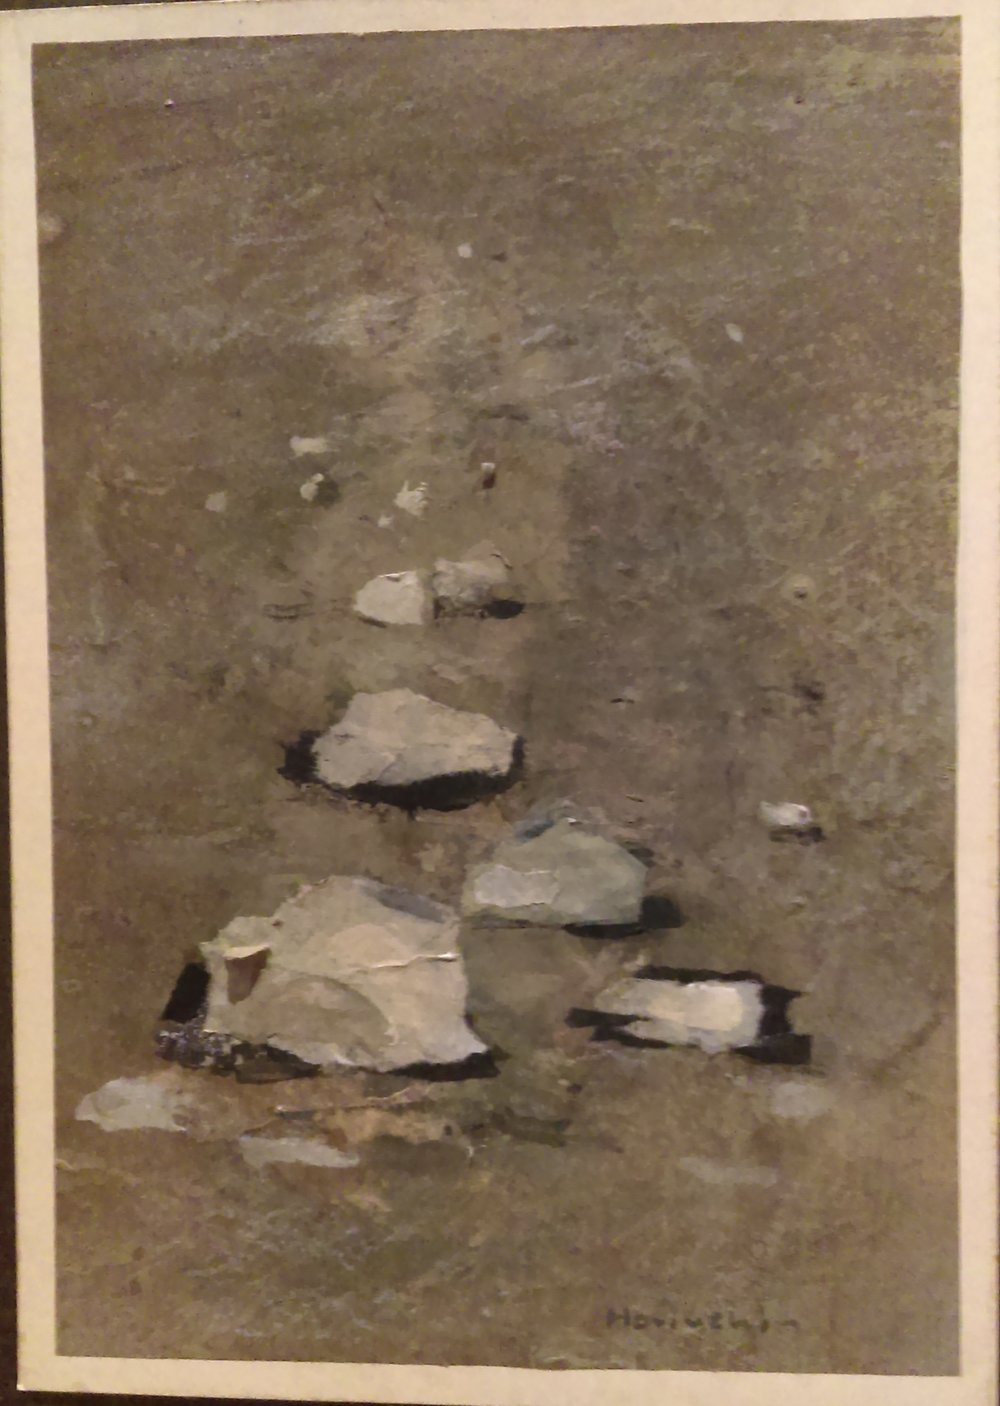 """And Paul Horuchi (1906-1999) calls his collage """"Rocks,"""" but they could almost be small cumulus clouds floating in the smoggy or sepia-tinted air."""